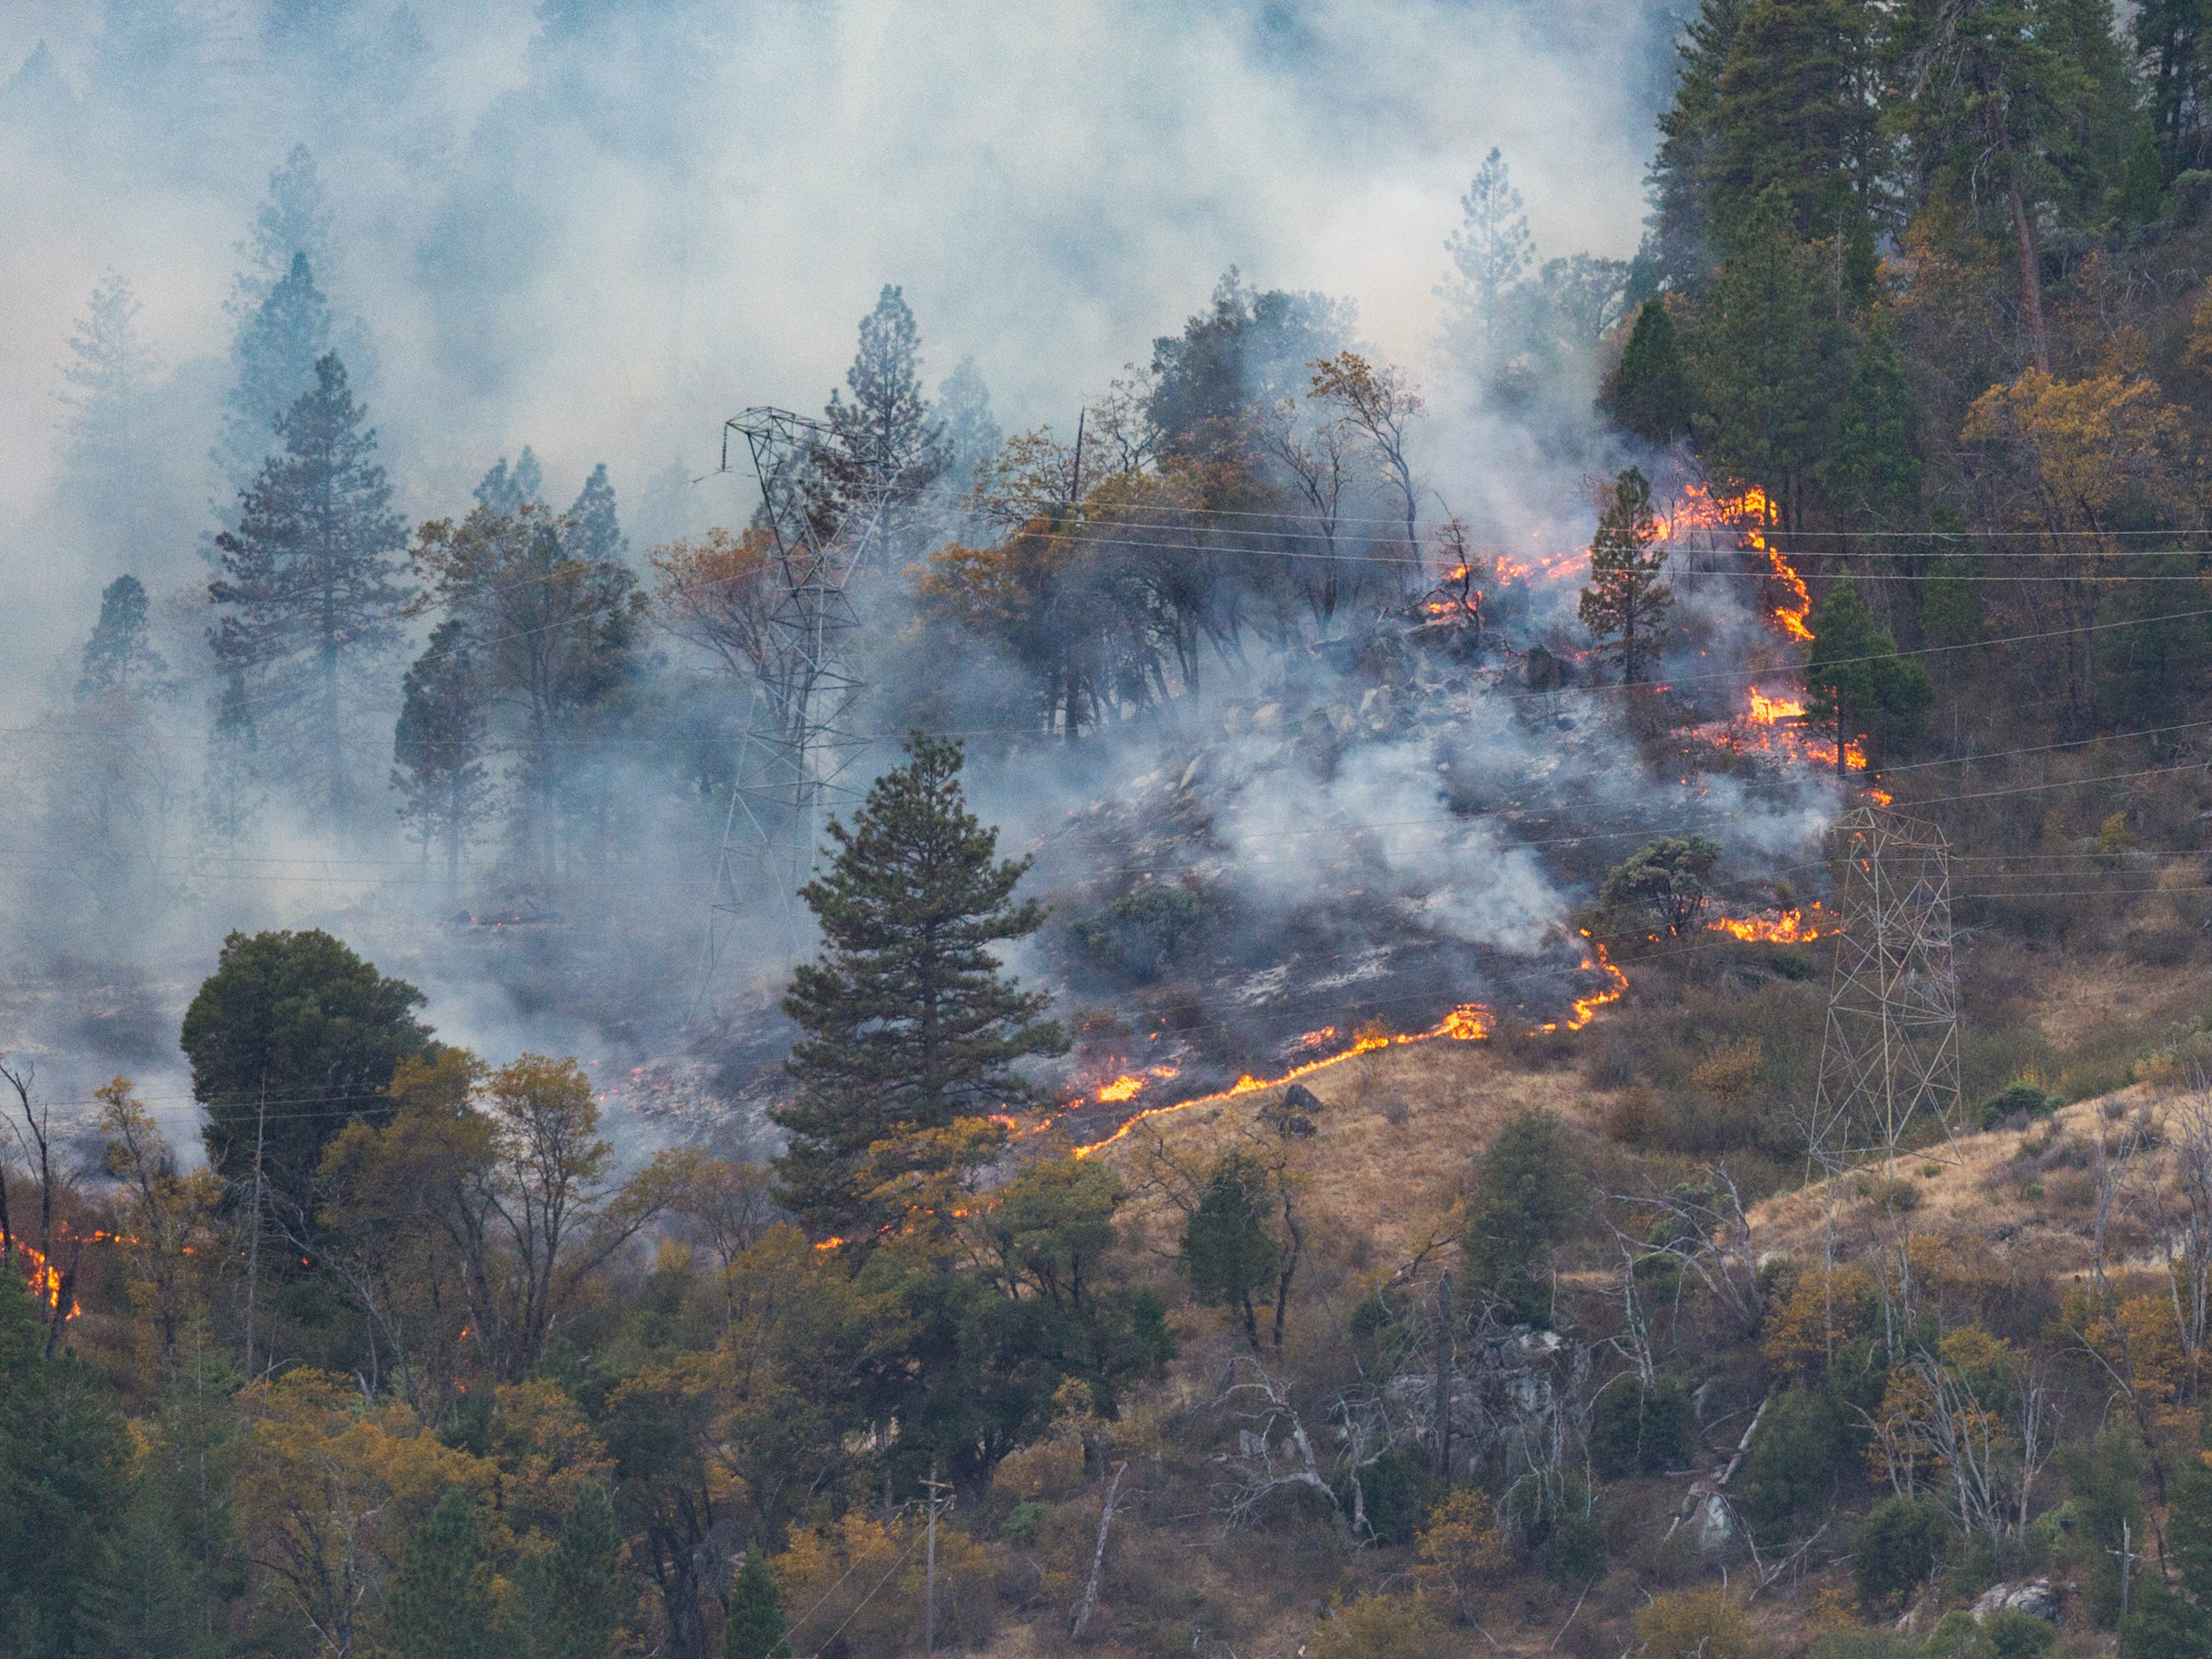 The Camp Fire continues to burn near Butte Valley, Calf., Monday, Nov. 12, 2018.